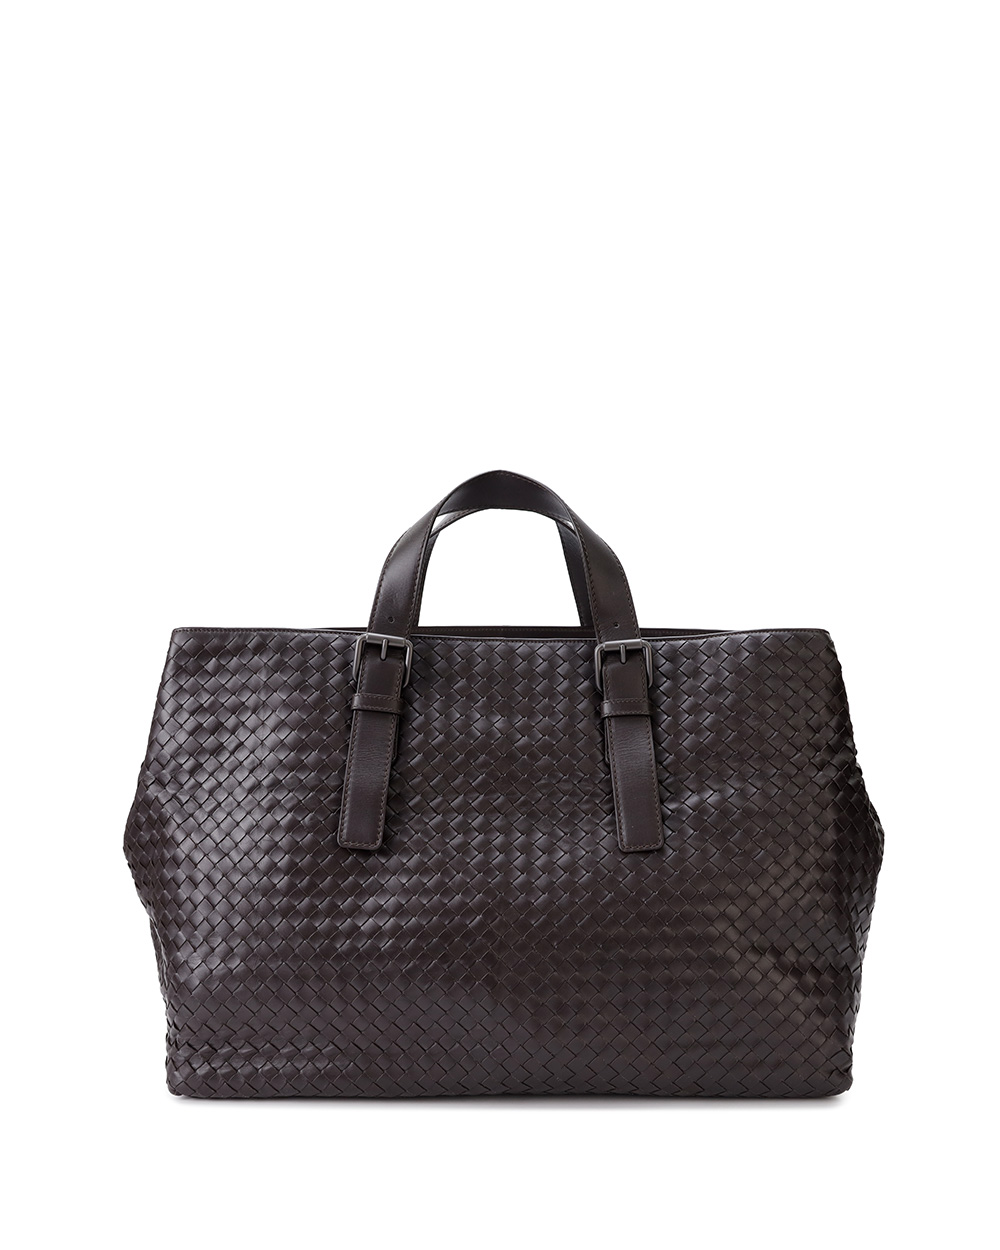 Intrecciato Light Calf Tote Bag